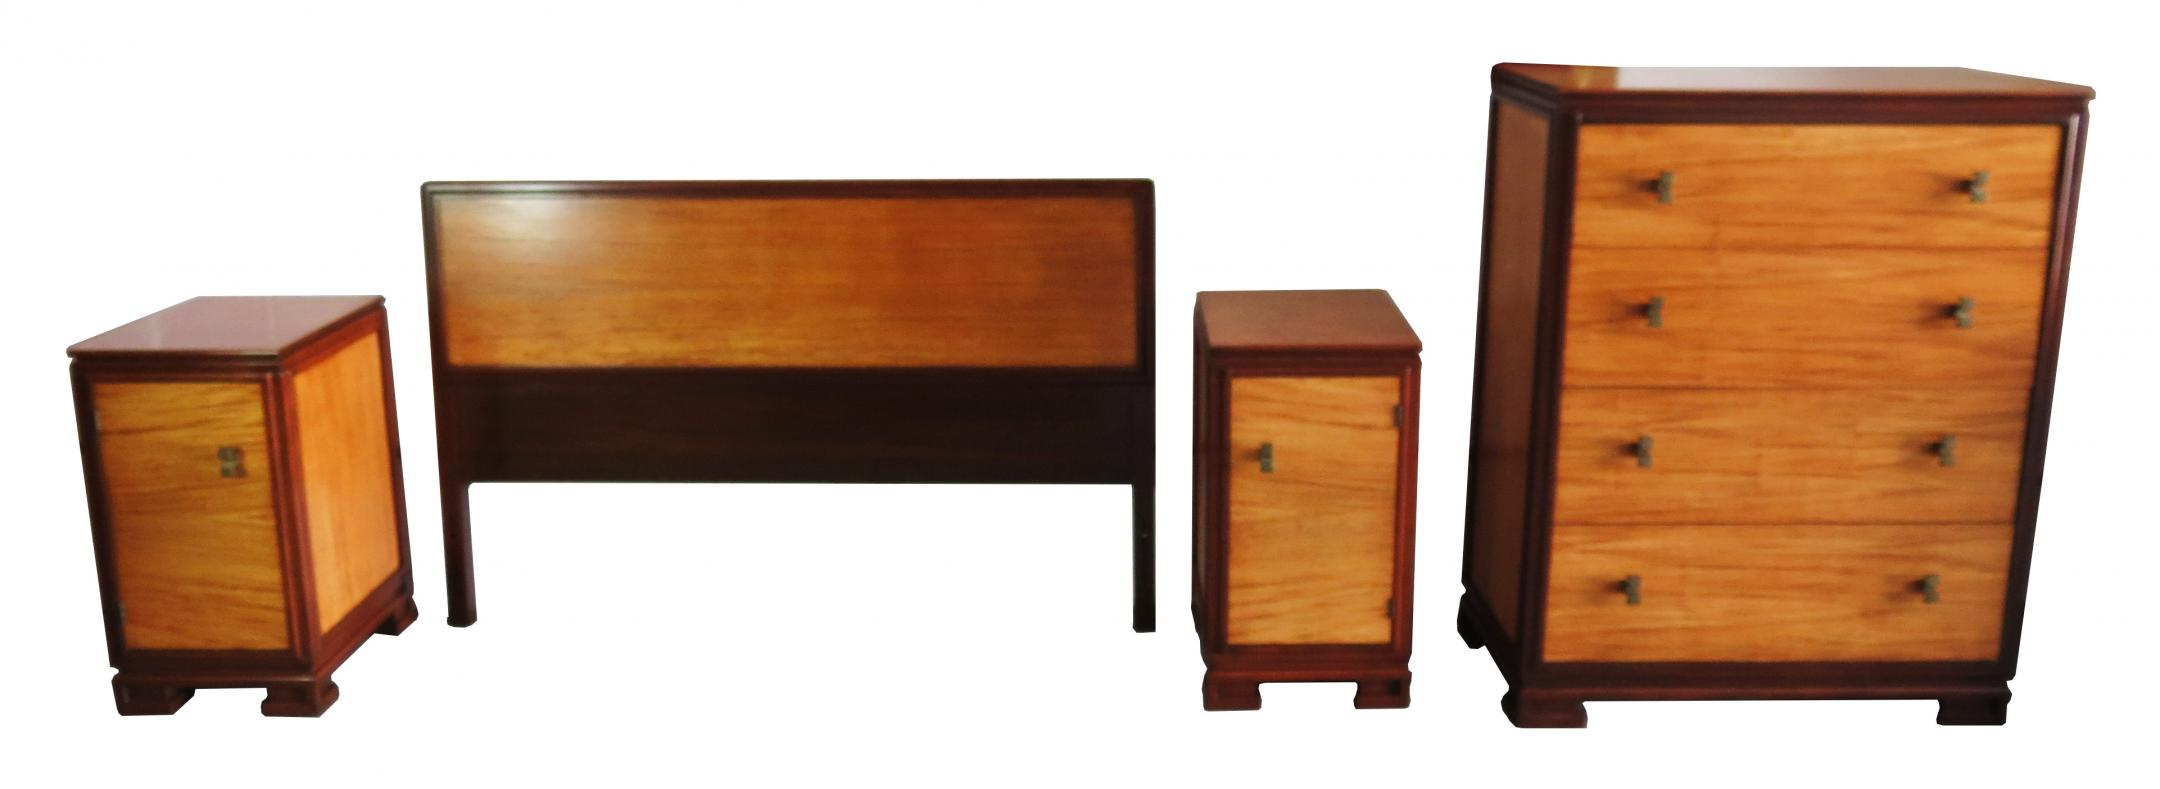 Donald Deskey For Amodec American Art Deco Bedroom Set | Modernism